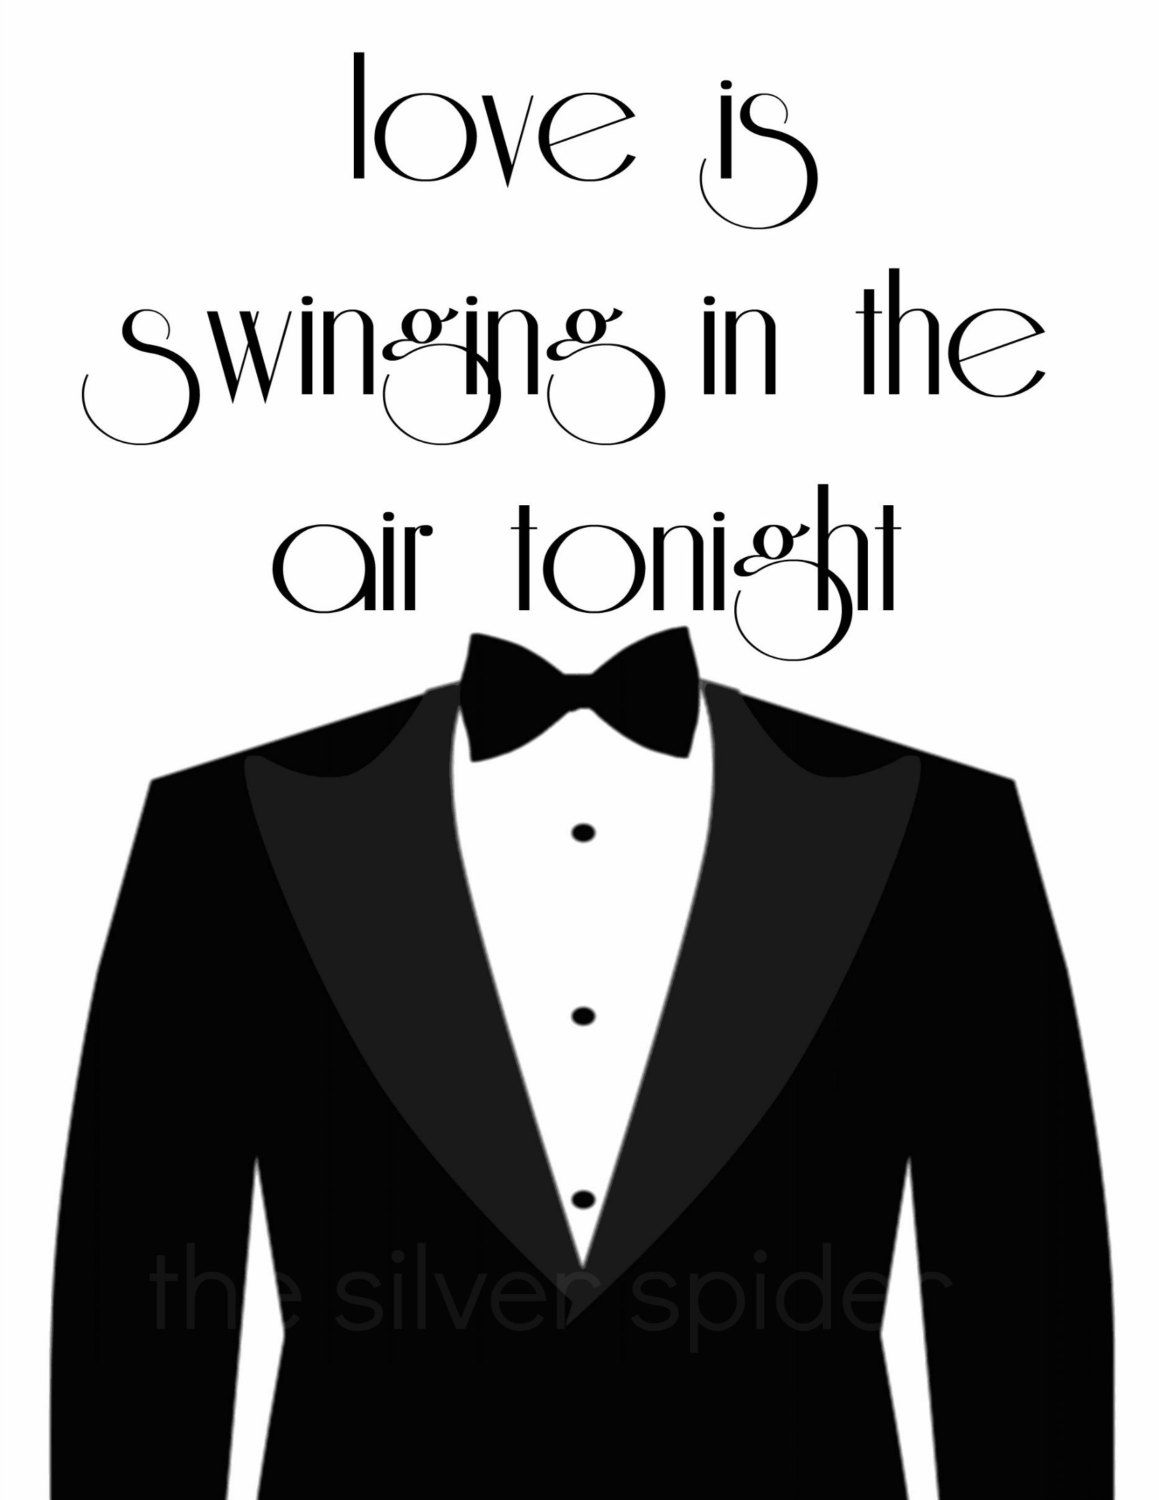 Suit Tie Justin Timberlake Dance With Me Lyrics Suit And